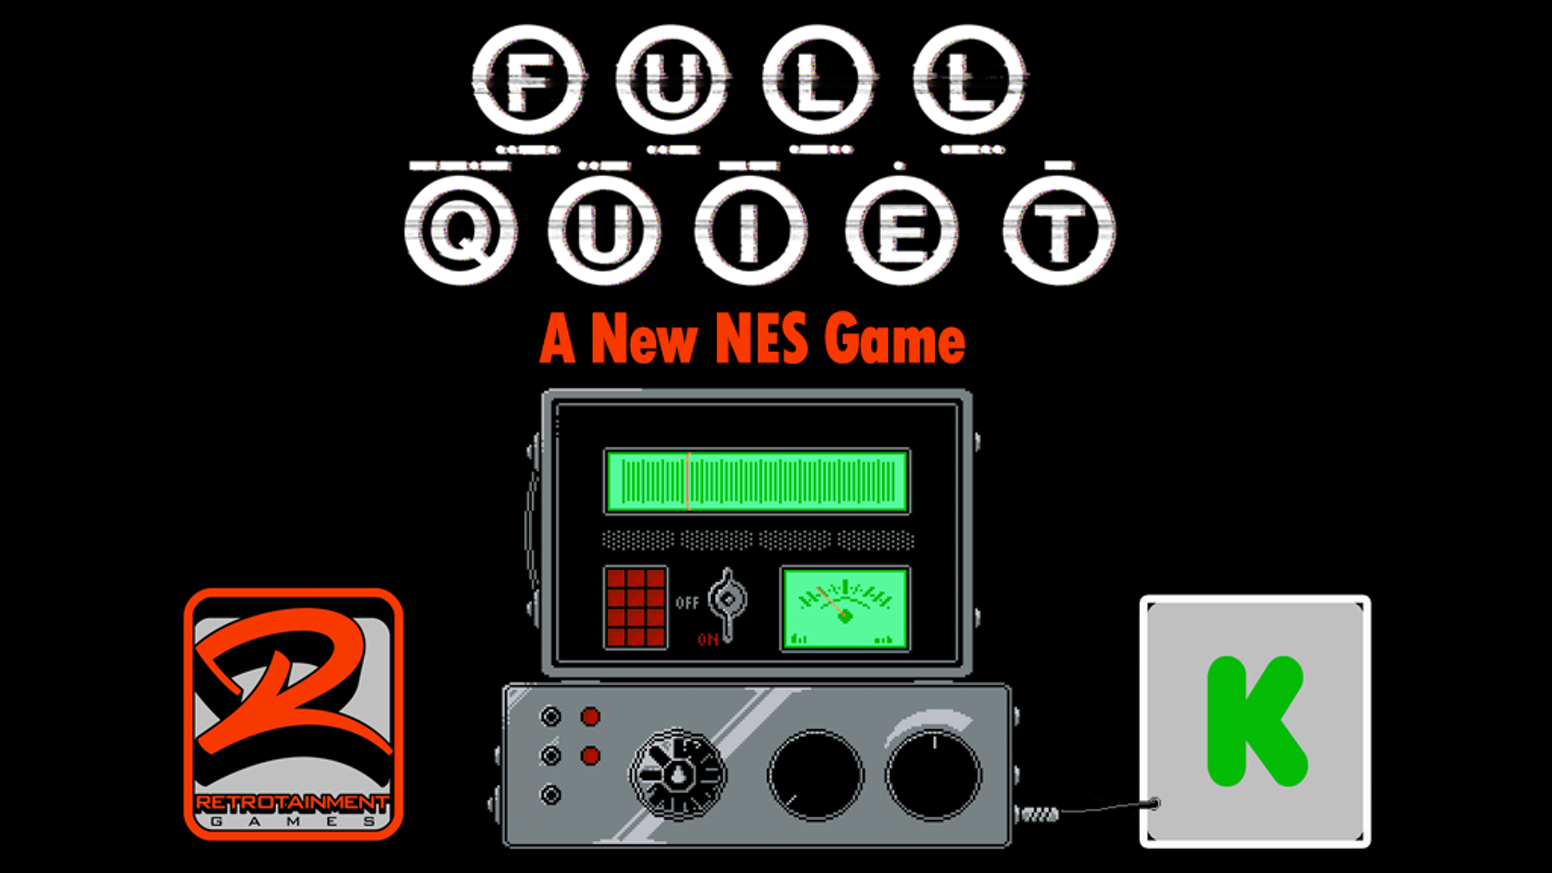 Full Quiet is our latest game for the NES and PC. Something has taken your son, you must venture deep into the forest to find him.